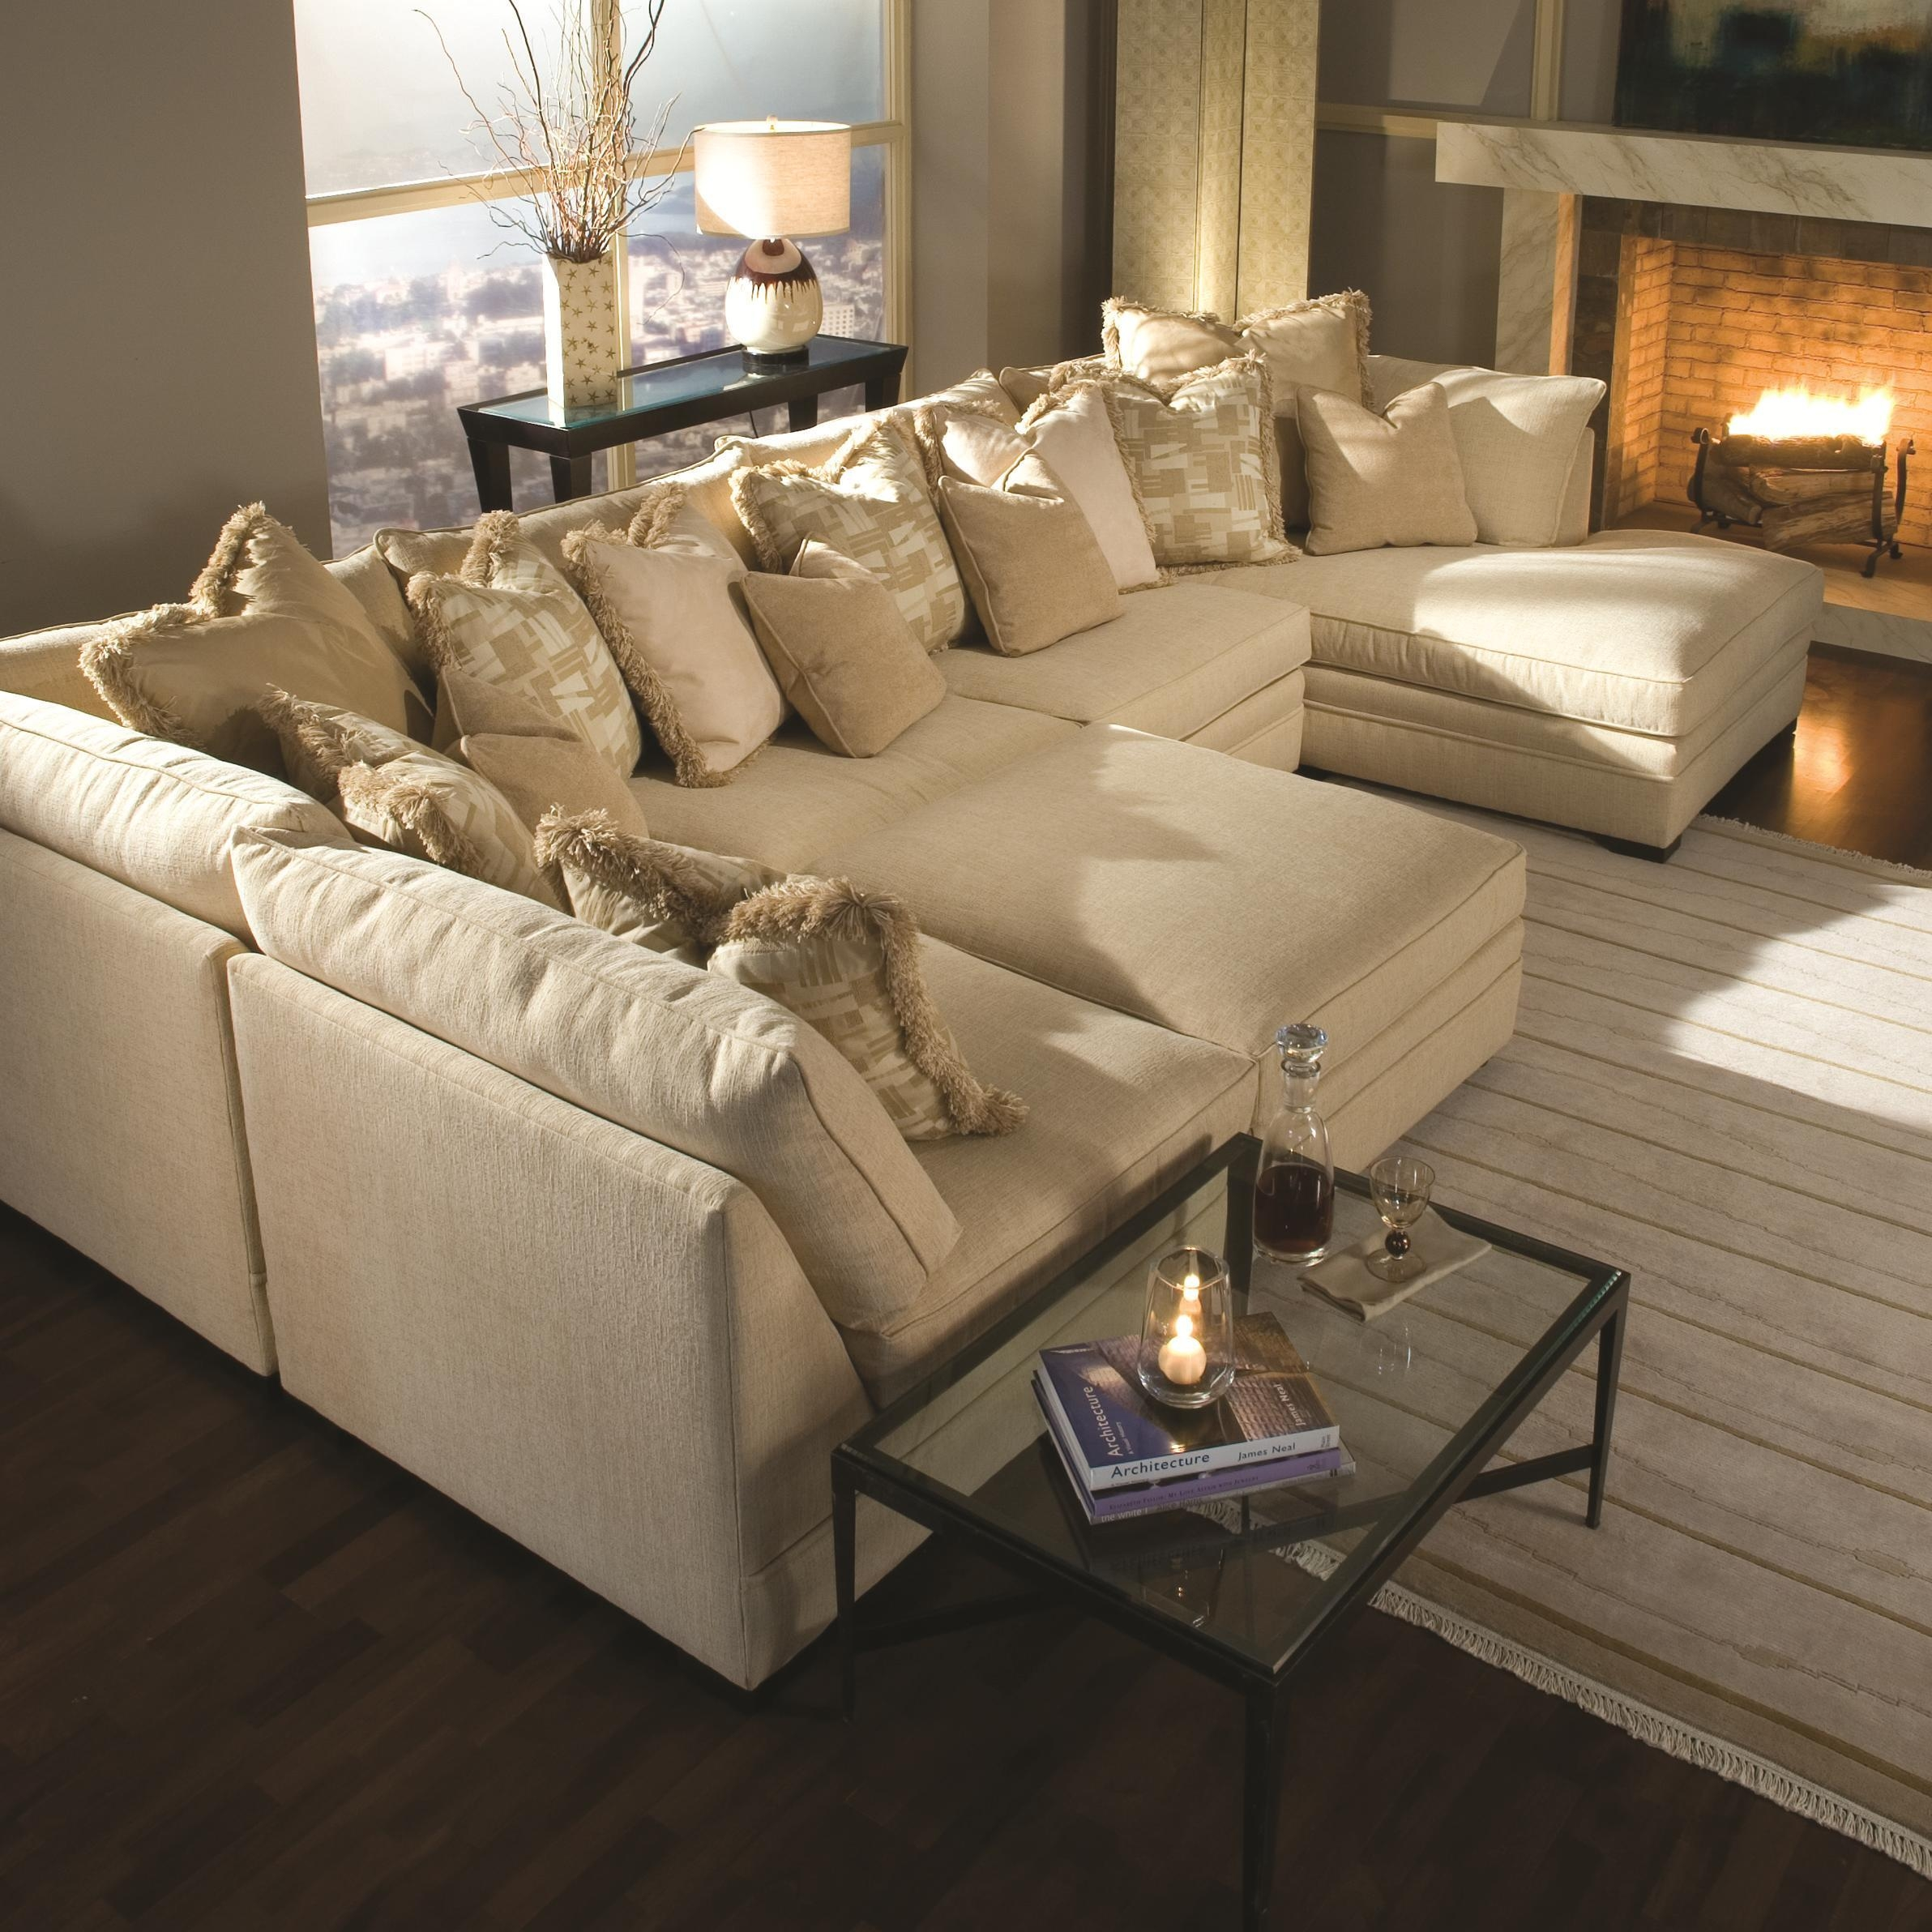 20 top large microfiber sectional sofa ideas for Interesting living room furniture